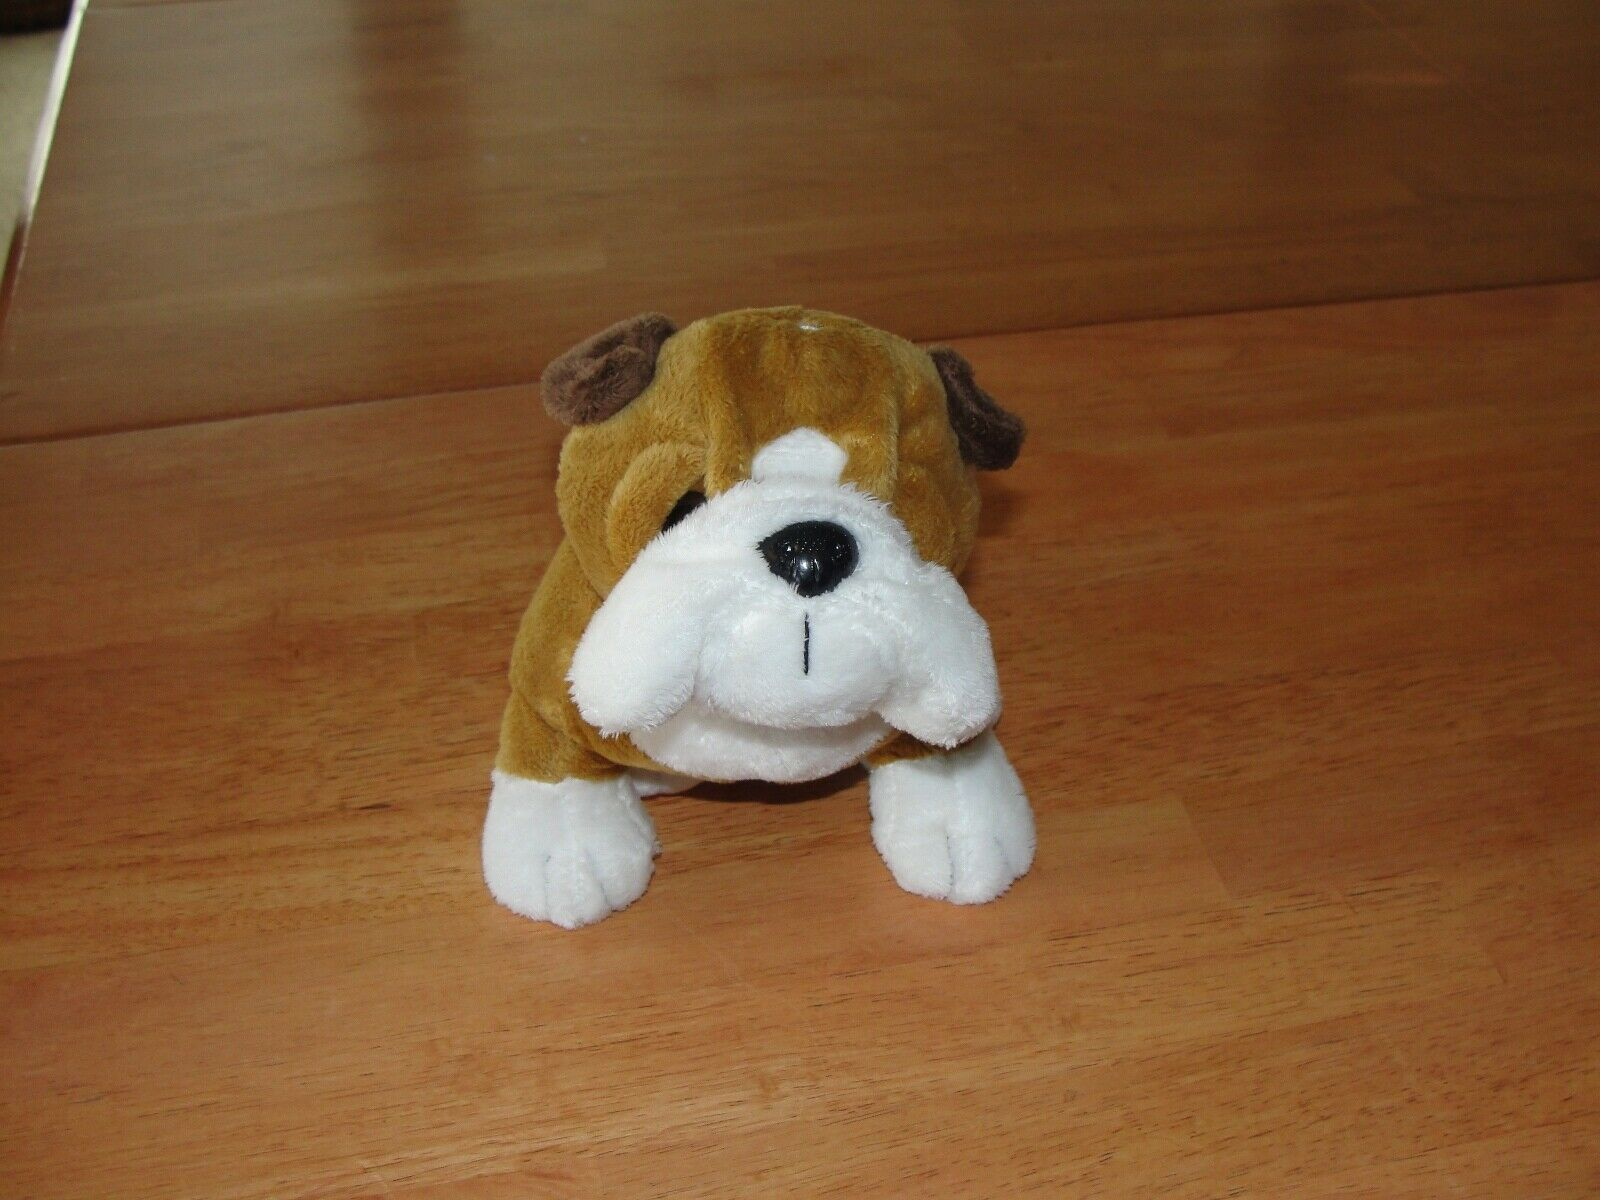 Primary image for Plush Ganz Webkinz Bulldog  HM126 (No Code Just Plush)